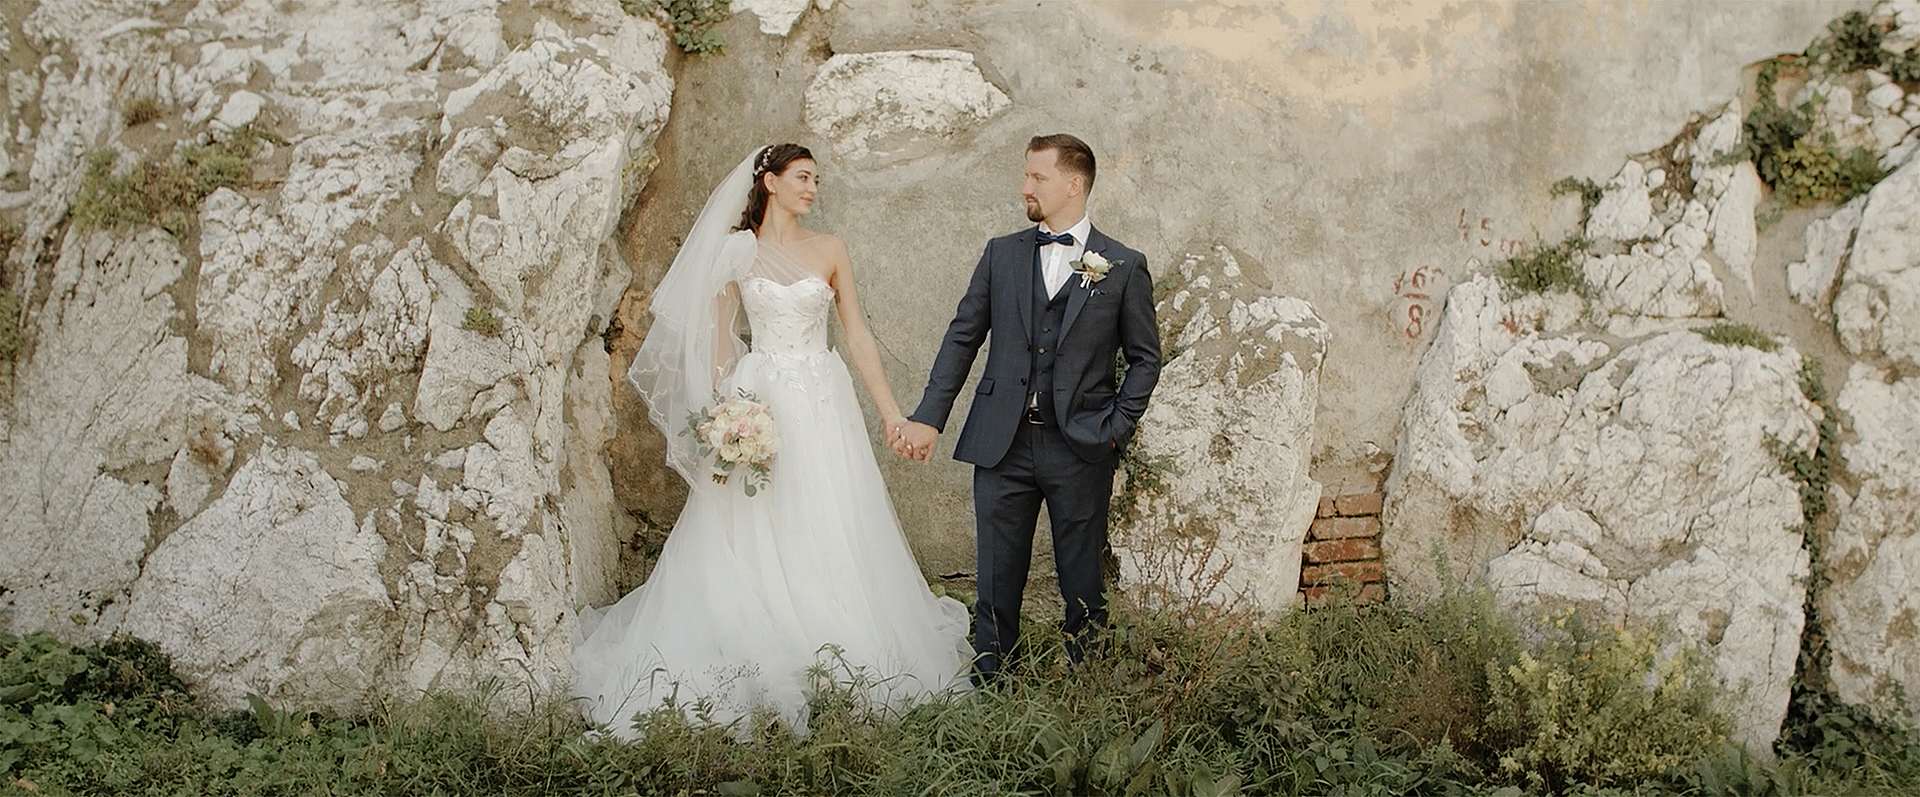 Darja + Antonin | Mikulov, Czechia | a church